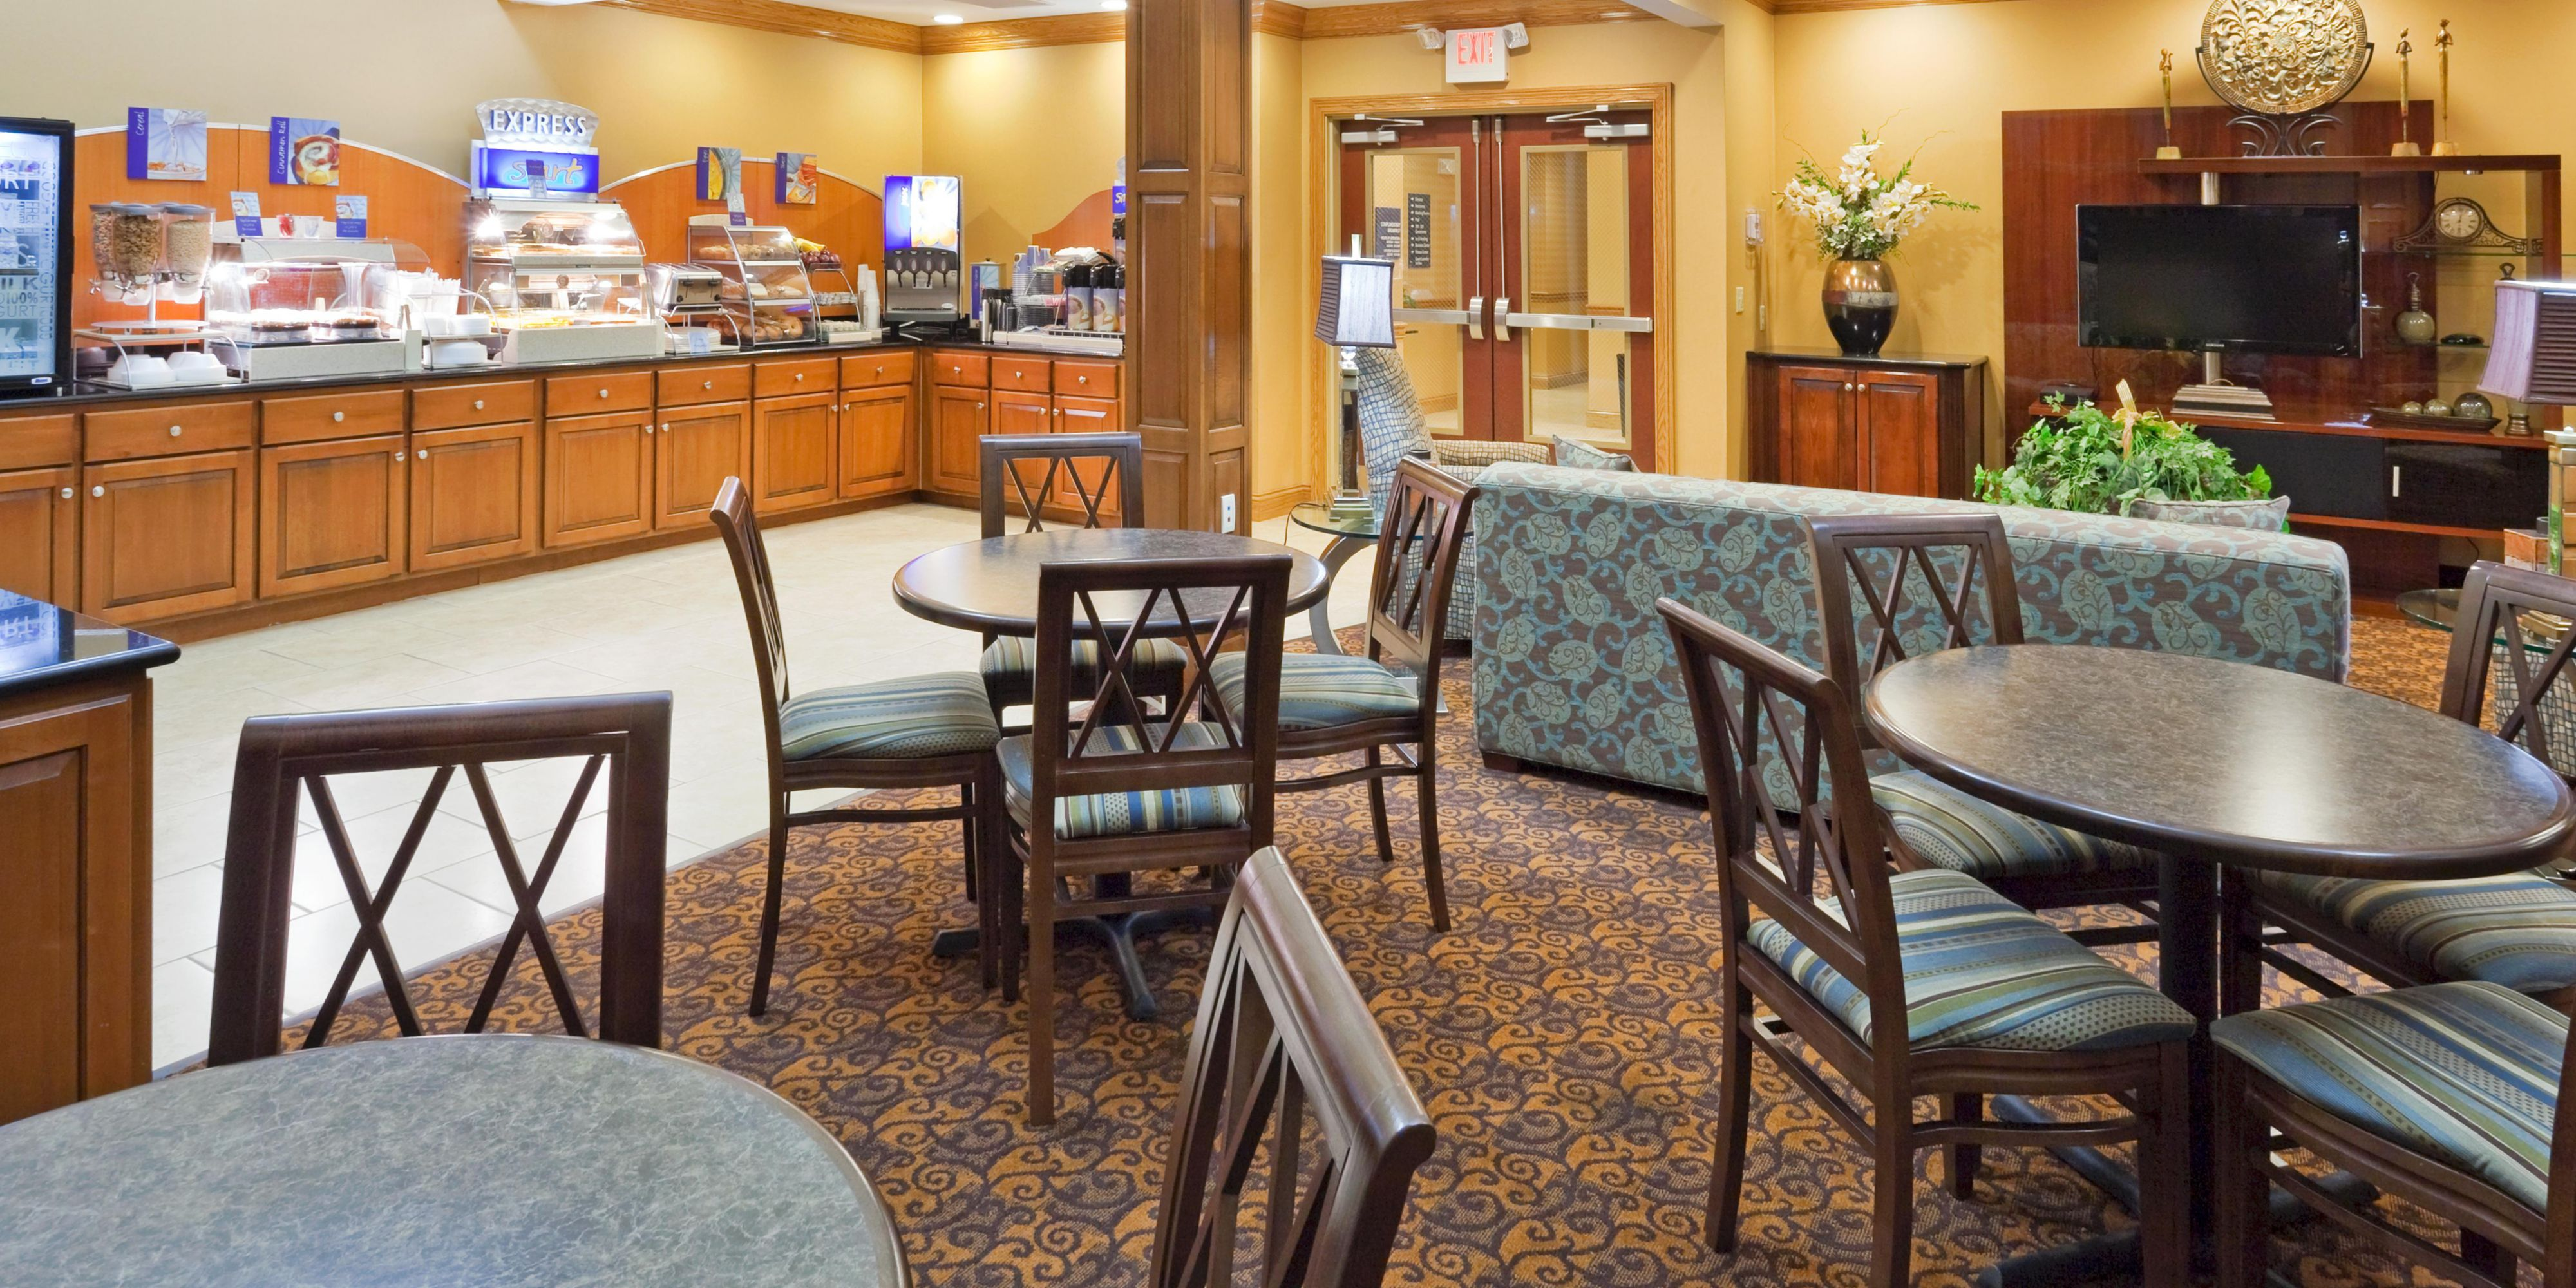 Holiday Inn Express Suites Somerset Central Hotel By Ihg